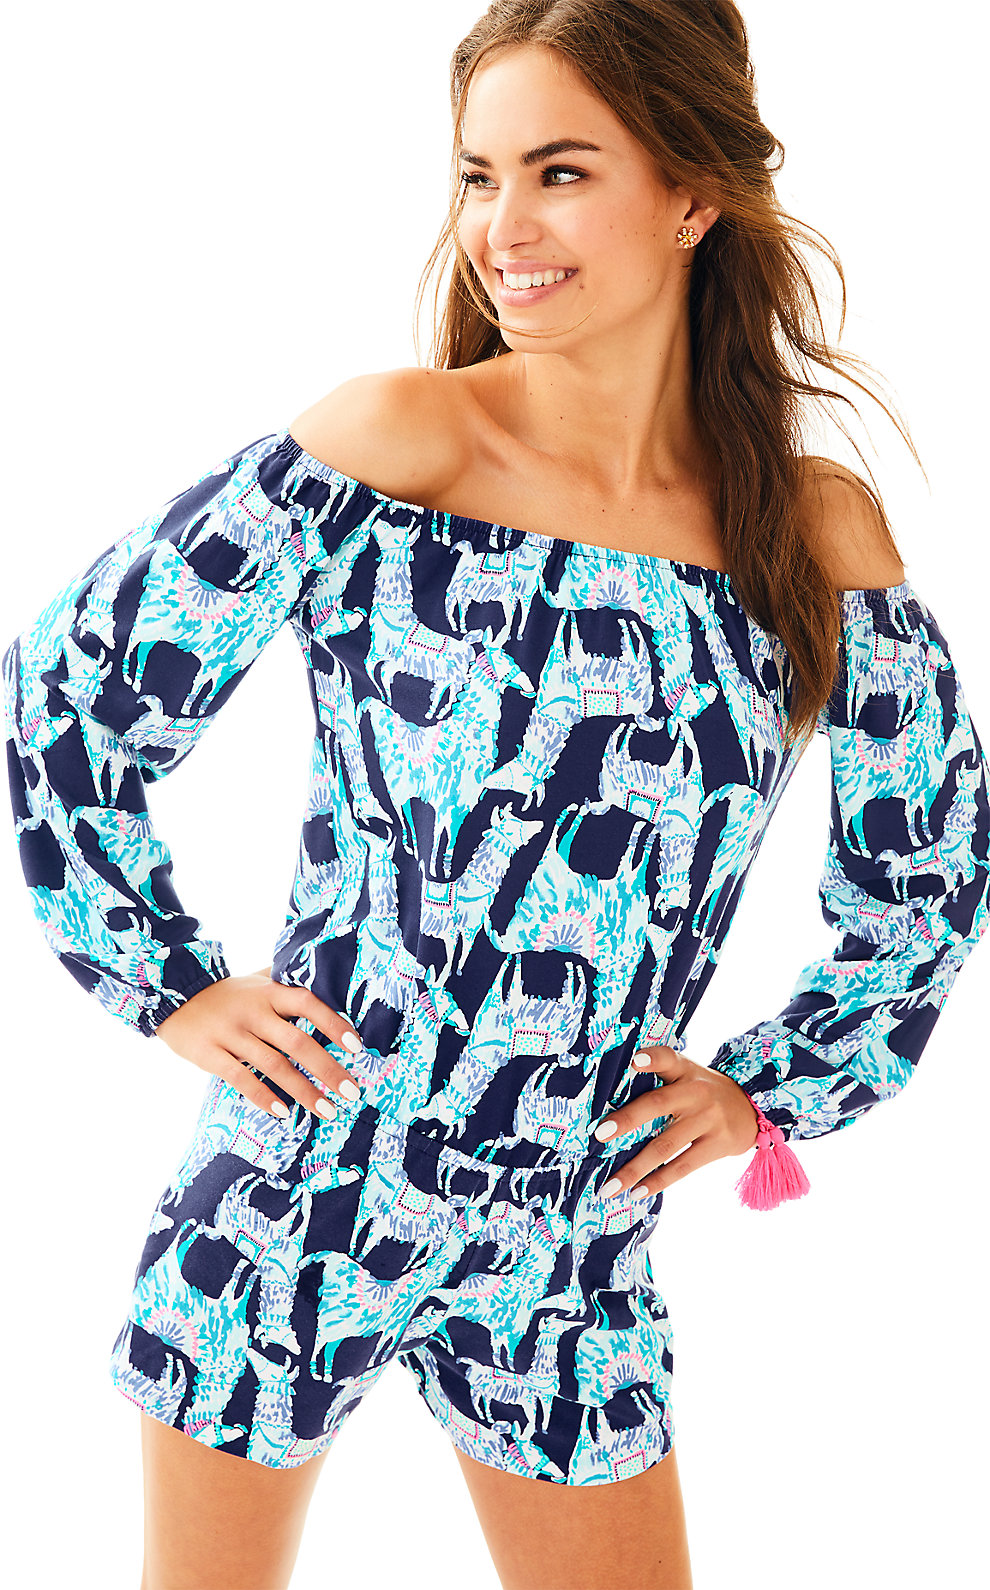 Lilly Pulitzer Lana Off The Shoulder Romper